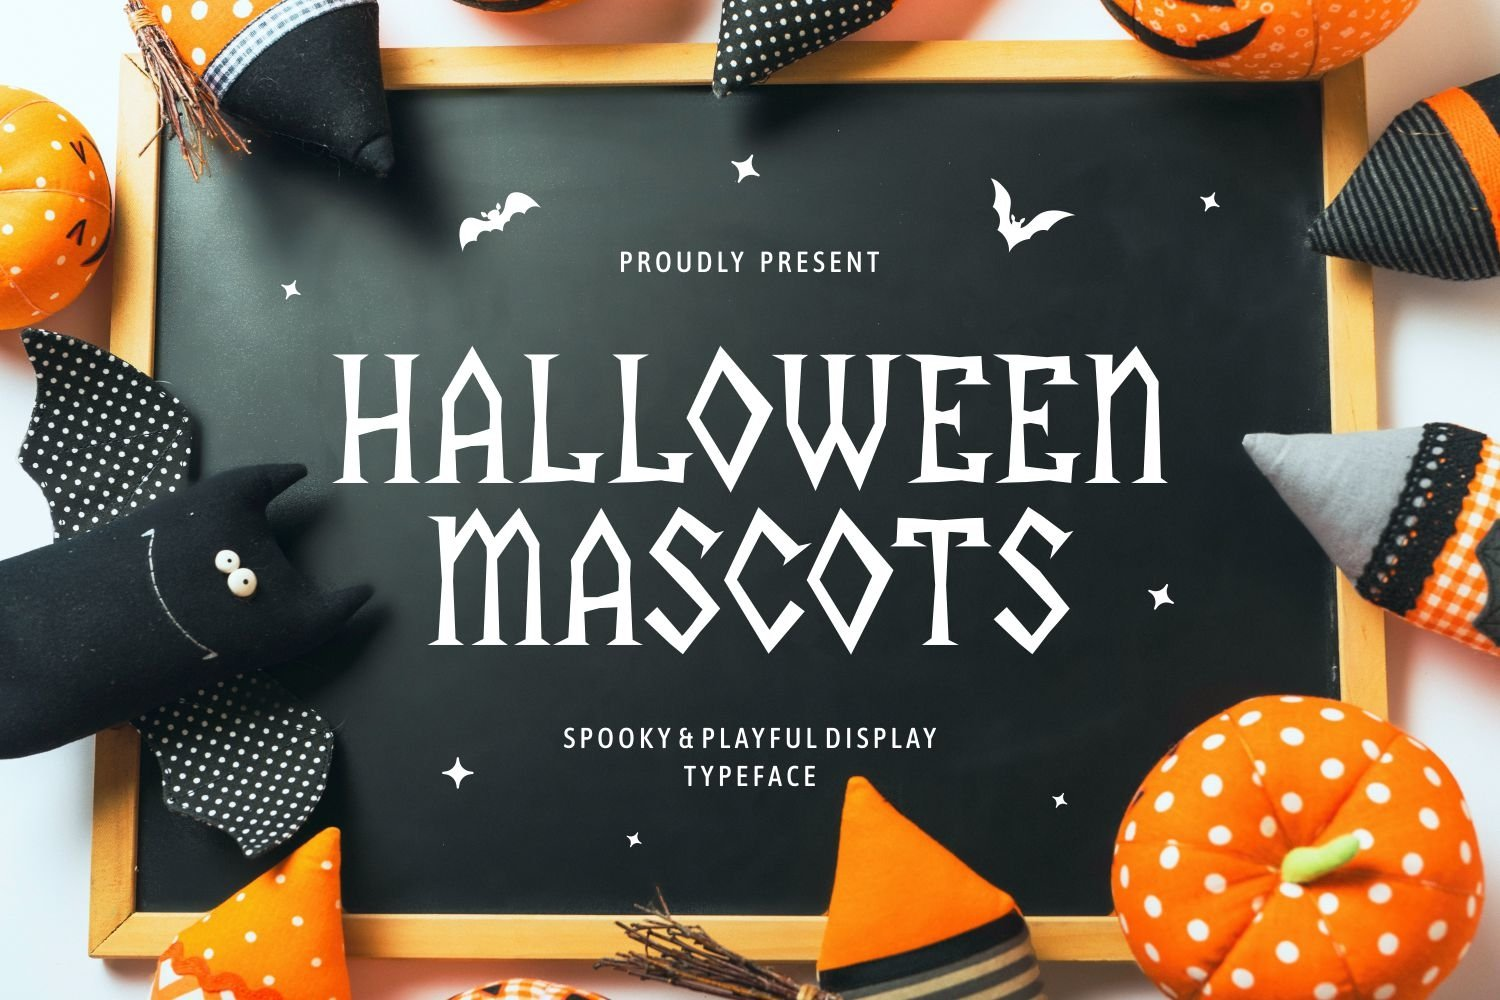 Halloween Mascots - Spooky and Playful Display Typeface example image 1